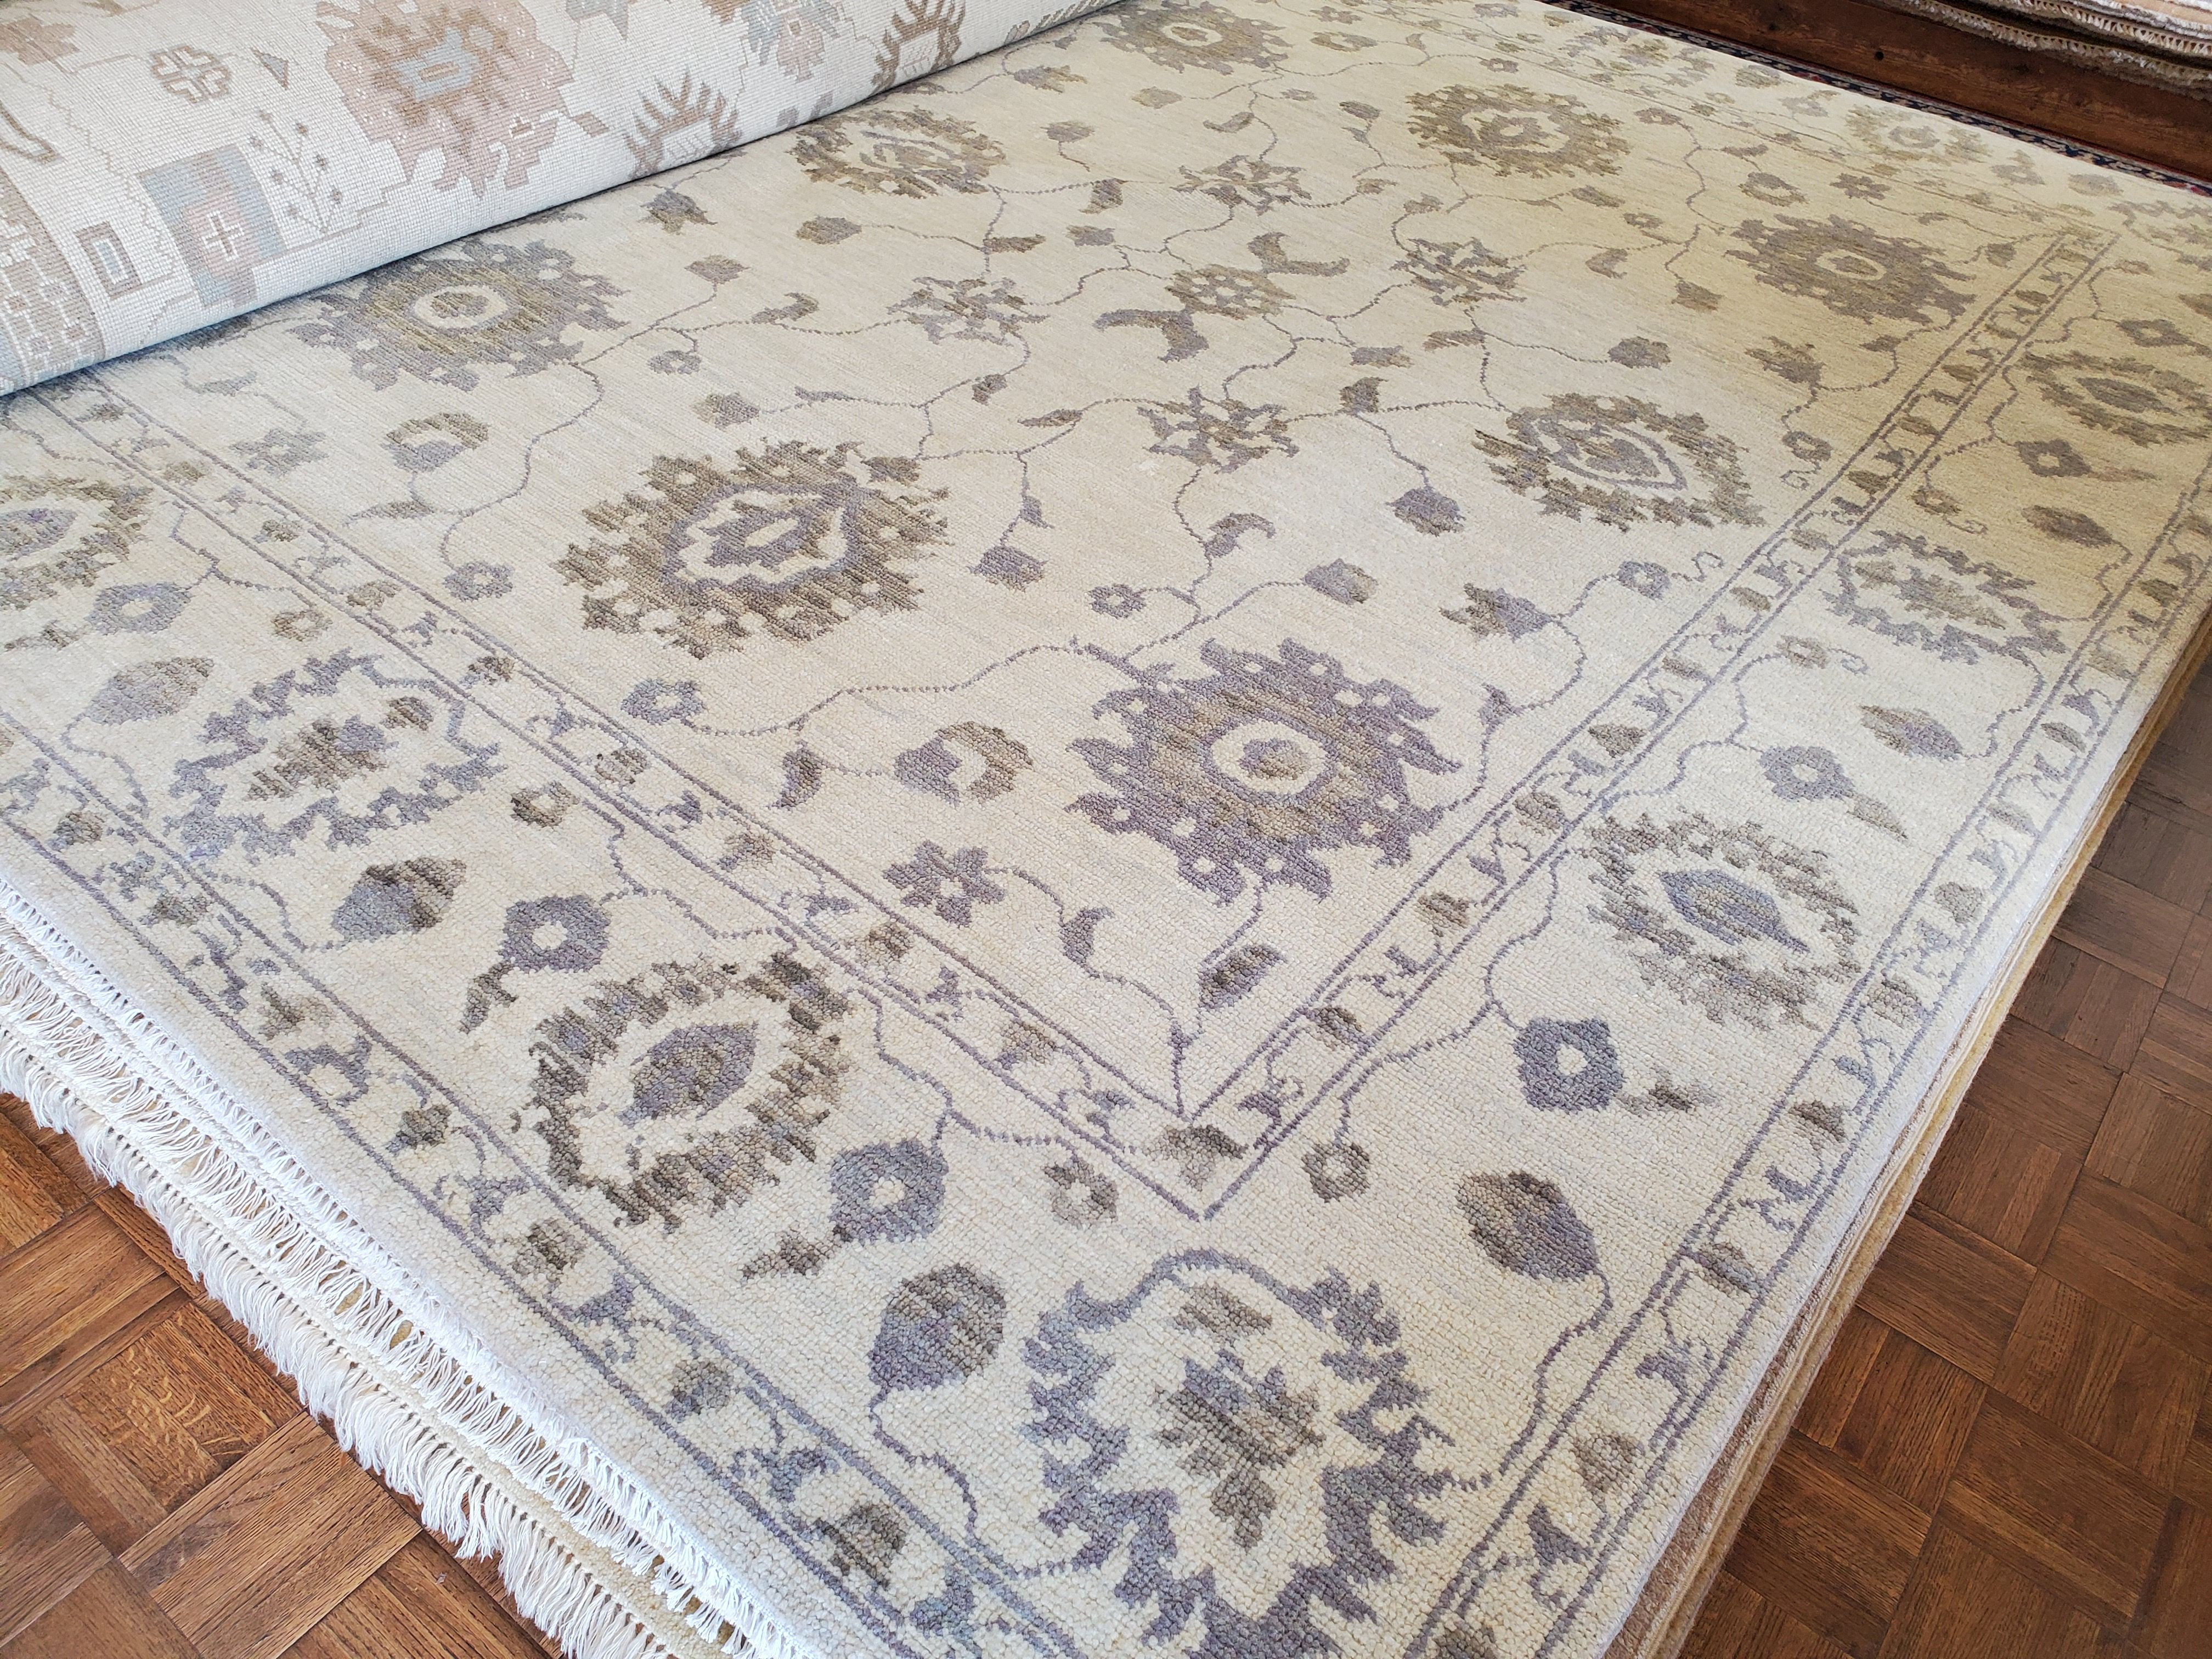 Oushaky Wispy Ways...  Vintage Oushak Oriental Rug  8x10  $1475 reduce from $3950 Call 205-870-4444 or drop by if it's for you!  Please share! 😉 #nilipourorientalrugs #MayDayDeal #familybusiness #since1972 #fullservice #shoplocal #happycustomer #artyoucantreadon #orientalrug #rug #arearug #naturalfibers #wholesaleprices #directimporting #affordableluxury #functionalrug #practicalrug #appeal #qualityrug #investment #conversationpiece #Lifestyle #rugcleaning #orientalrugcleaning #arearugcleaning